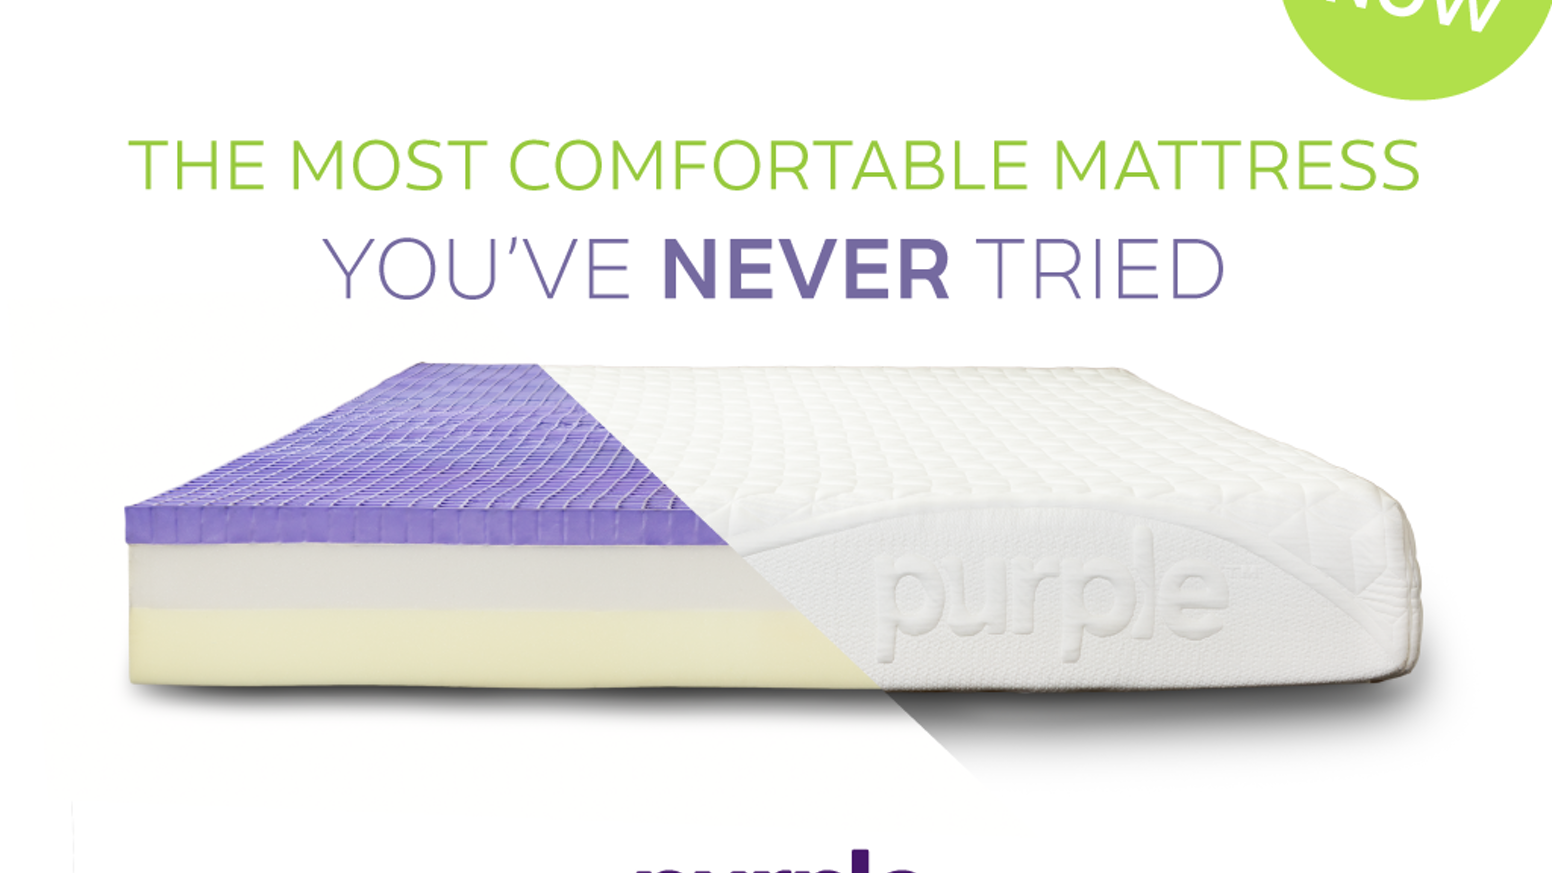 Thank You So Much To All Of Our Wonderful Backers For Making Purple A Reality